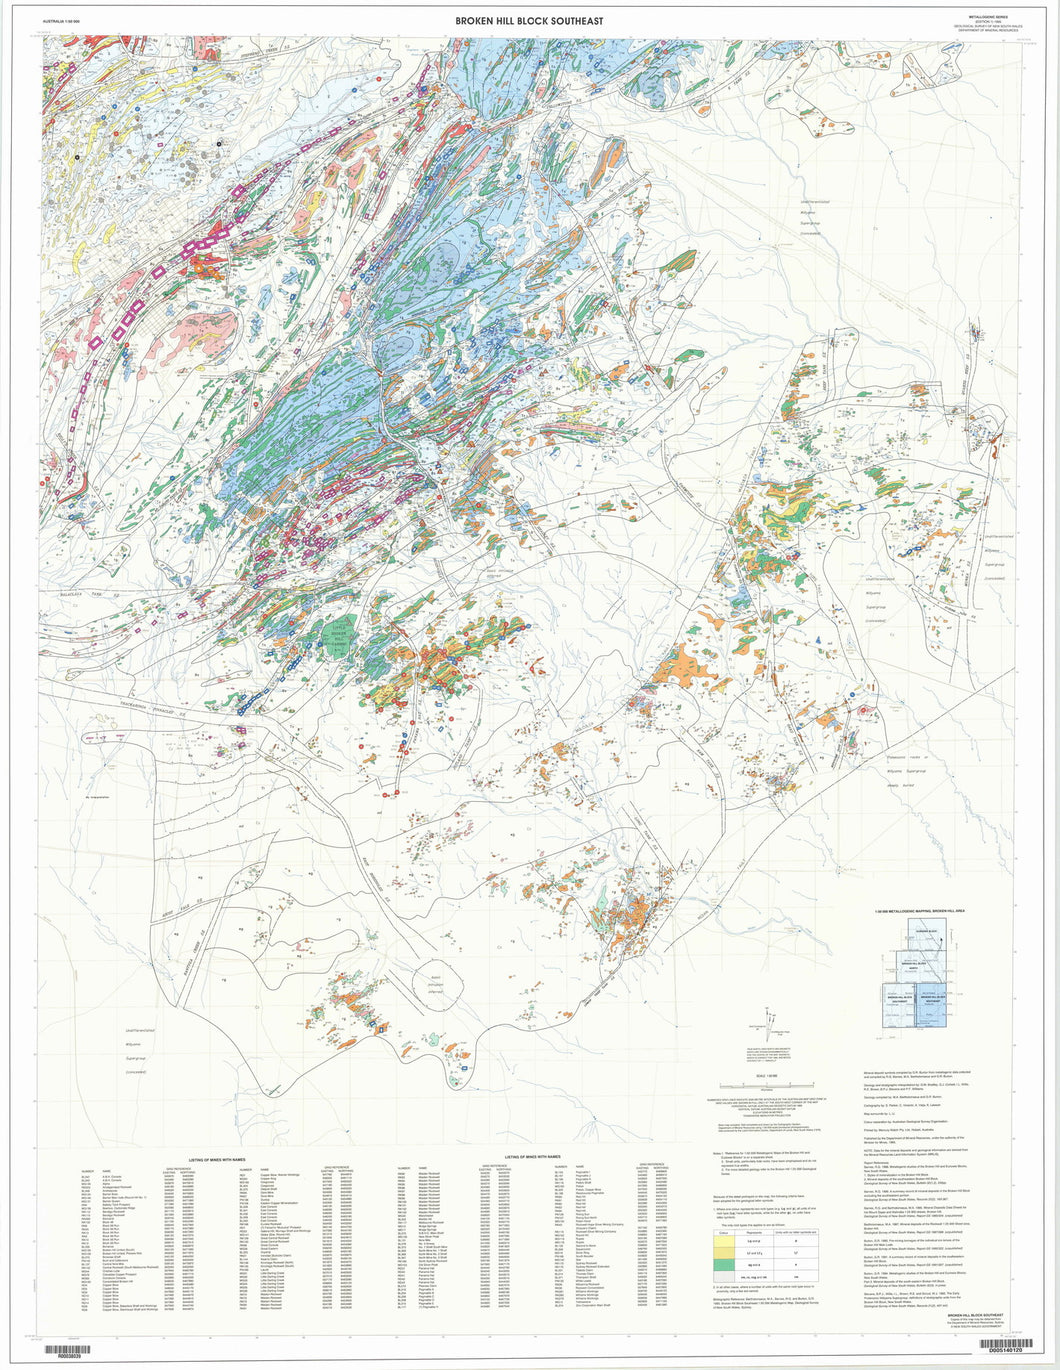 Image of Broken Hill Block Southeast 1:50000 Metallogenic map